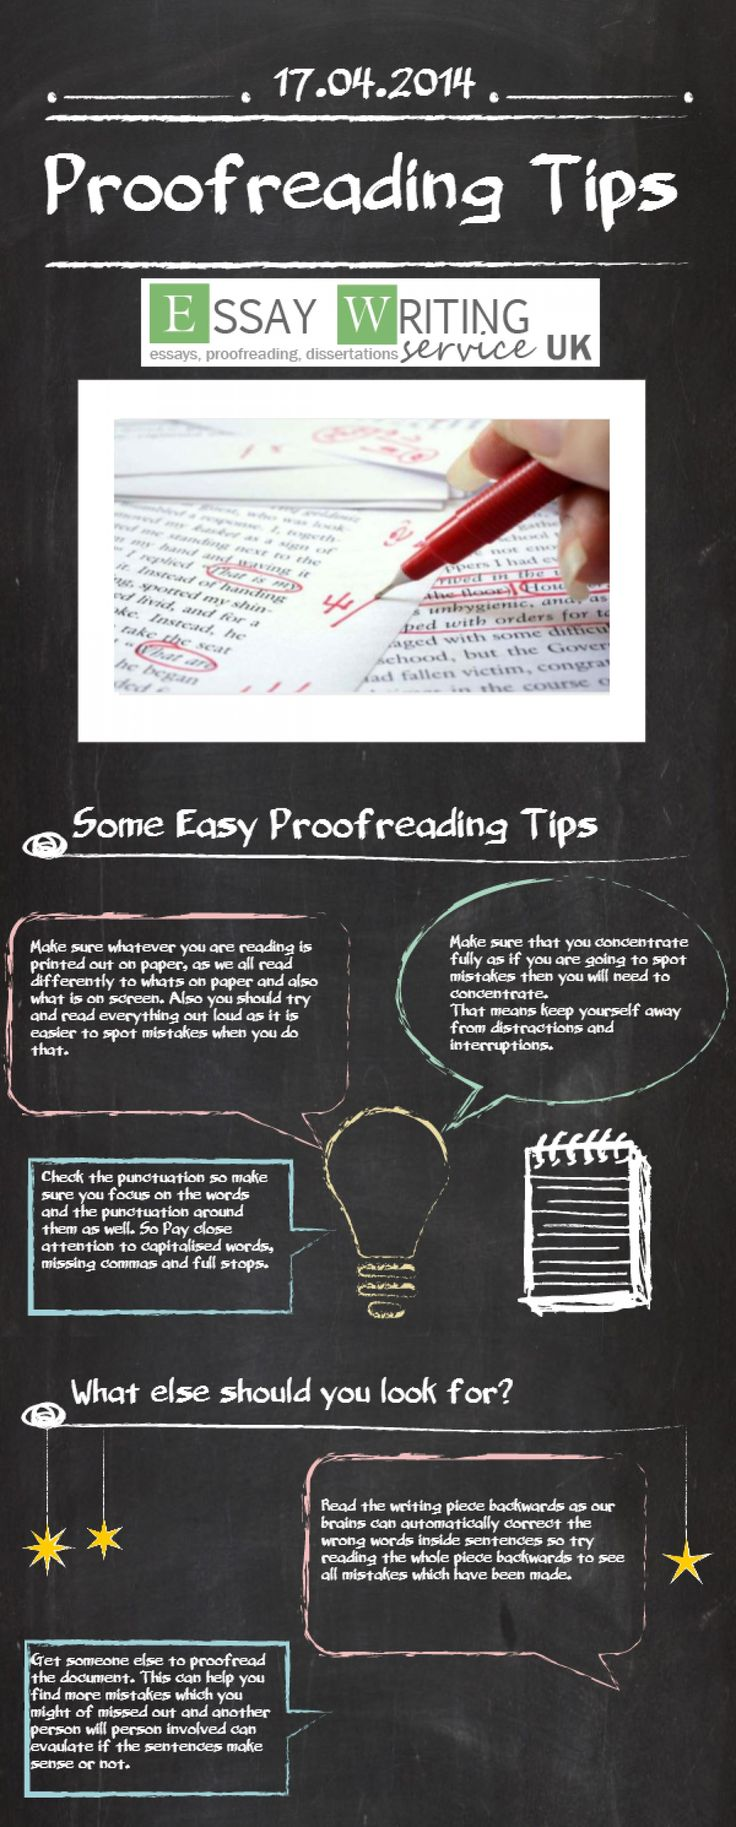 proofread my research paper Paperrater uses artificial intelligence to improve your writing includes grammar, plagiarism, and spelling check, along with word choice analysis and automated grading.